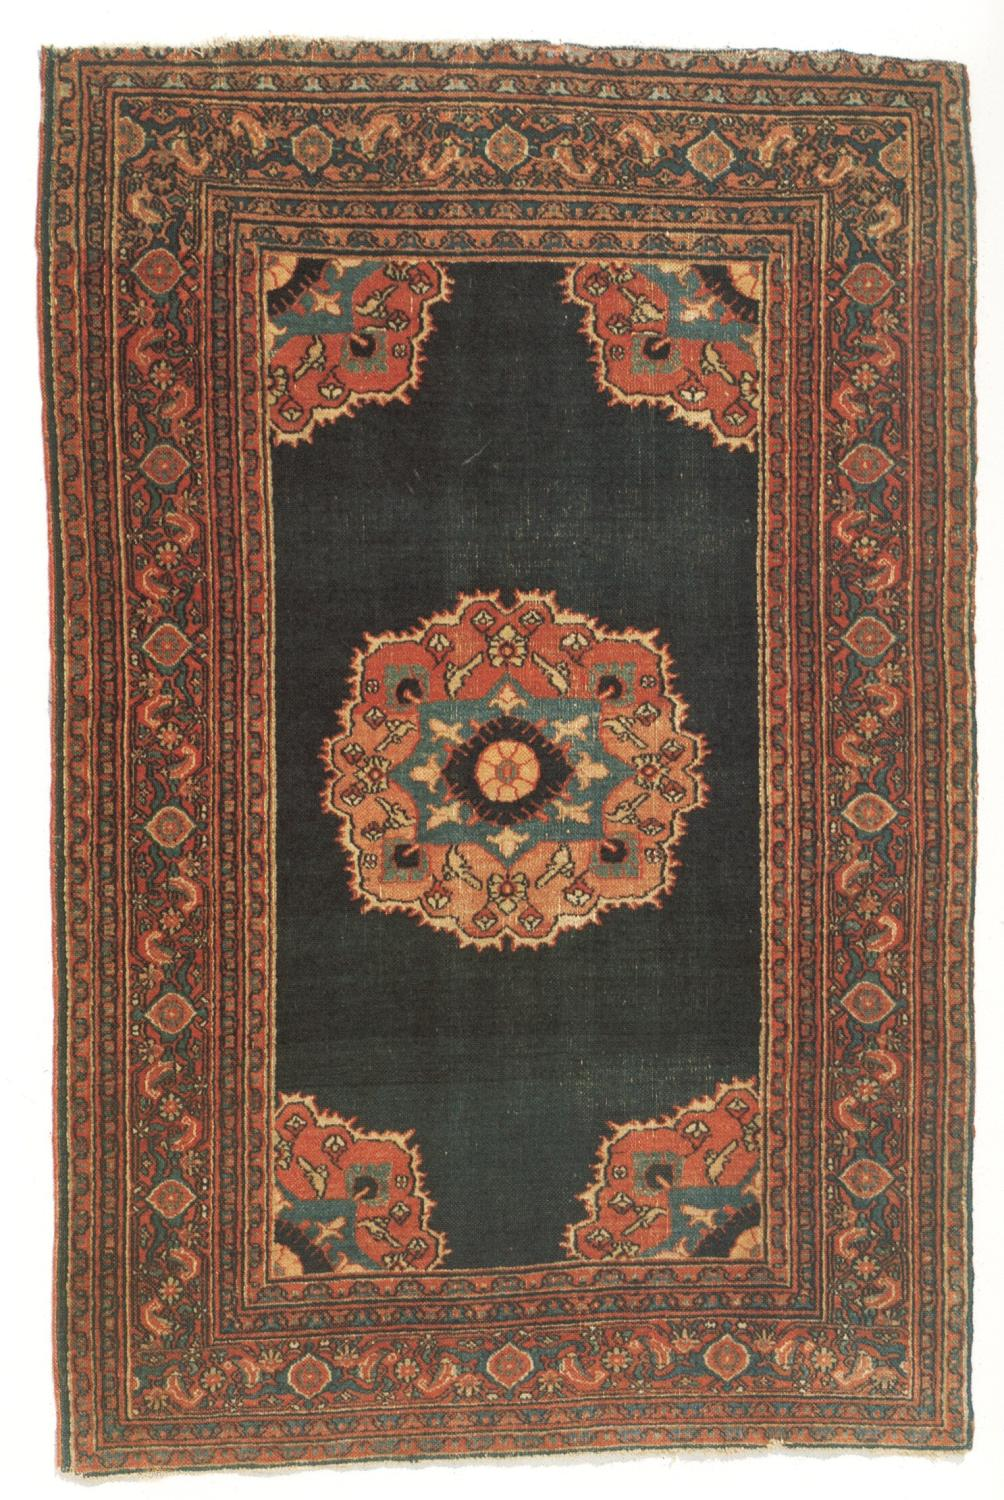 1977 Dictionary Of Oriental Rugs With A Monograph On Identification By Weave